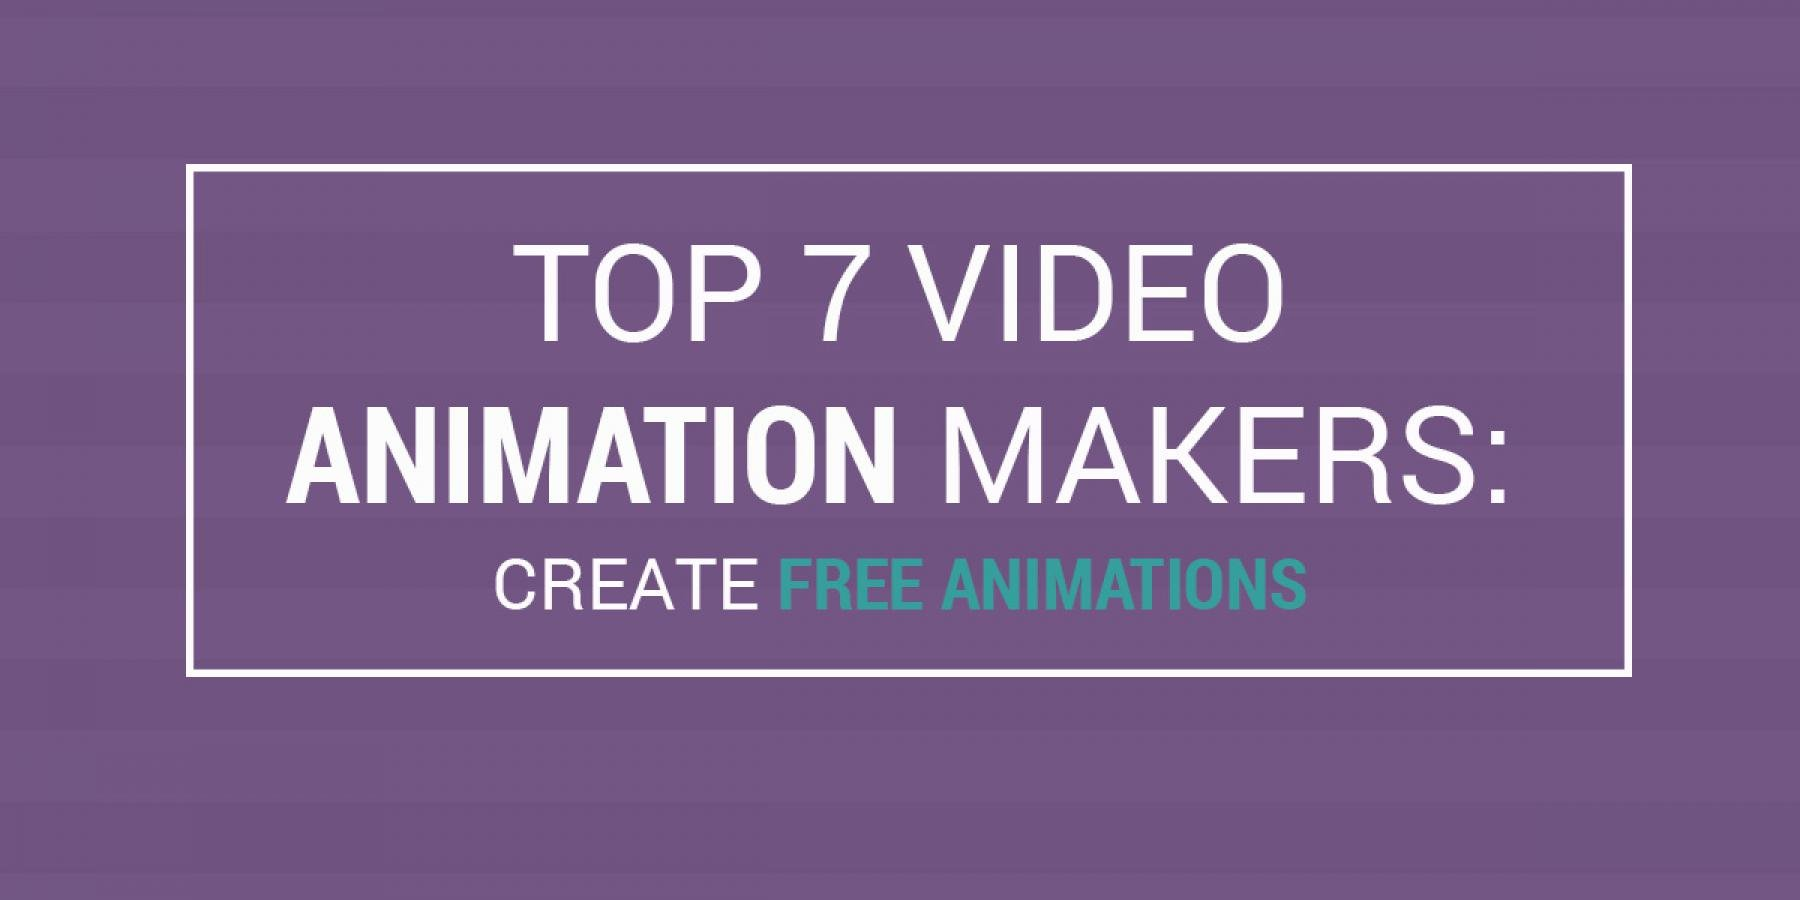 Top 7 Video Animation Makers- Create Free Animations Featured